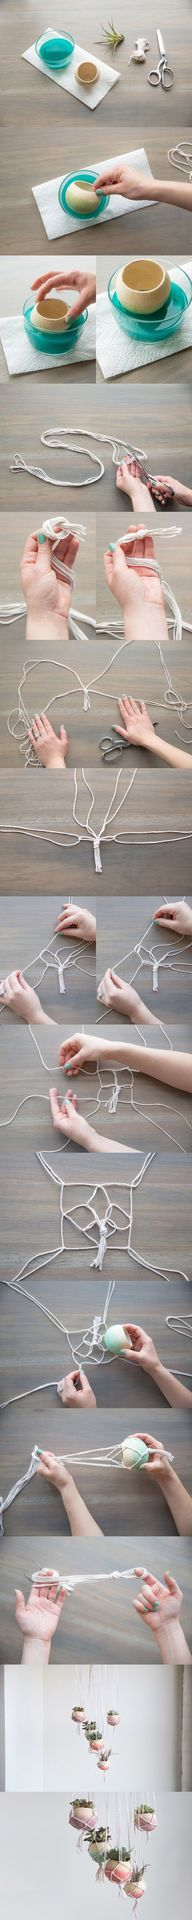 Such a wonderful tutorial on how to make macramé pot holders.